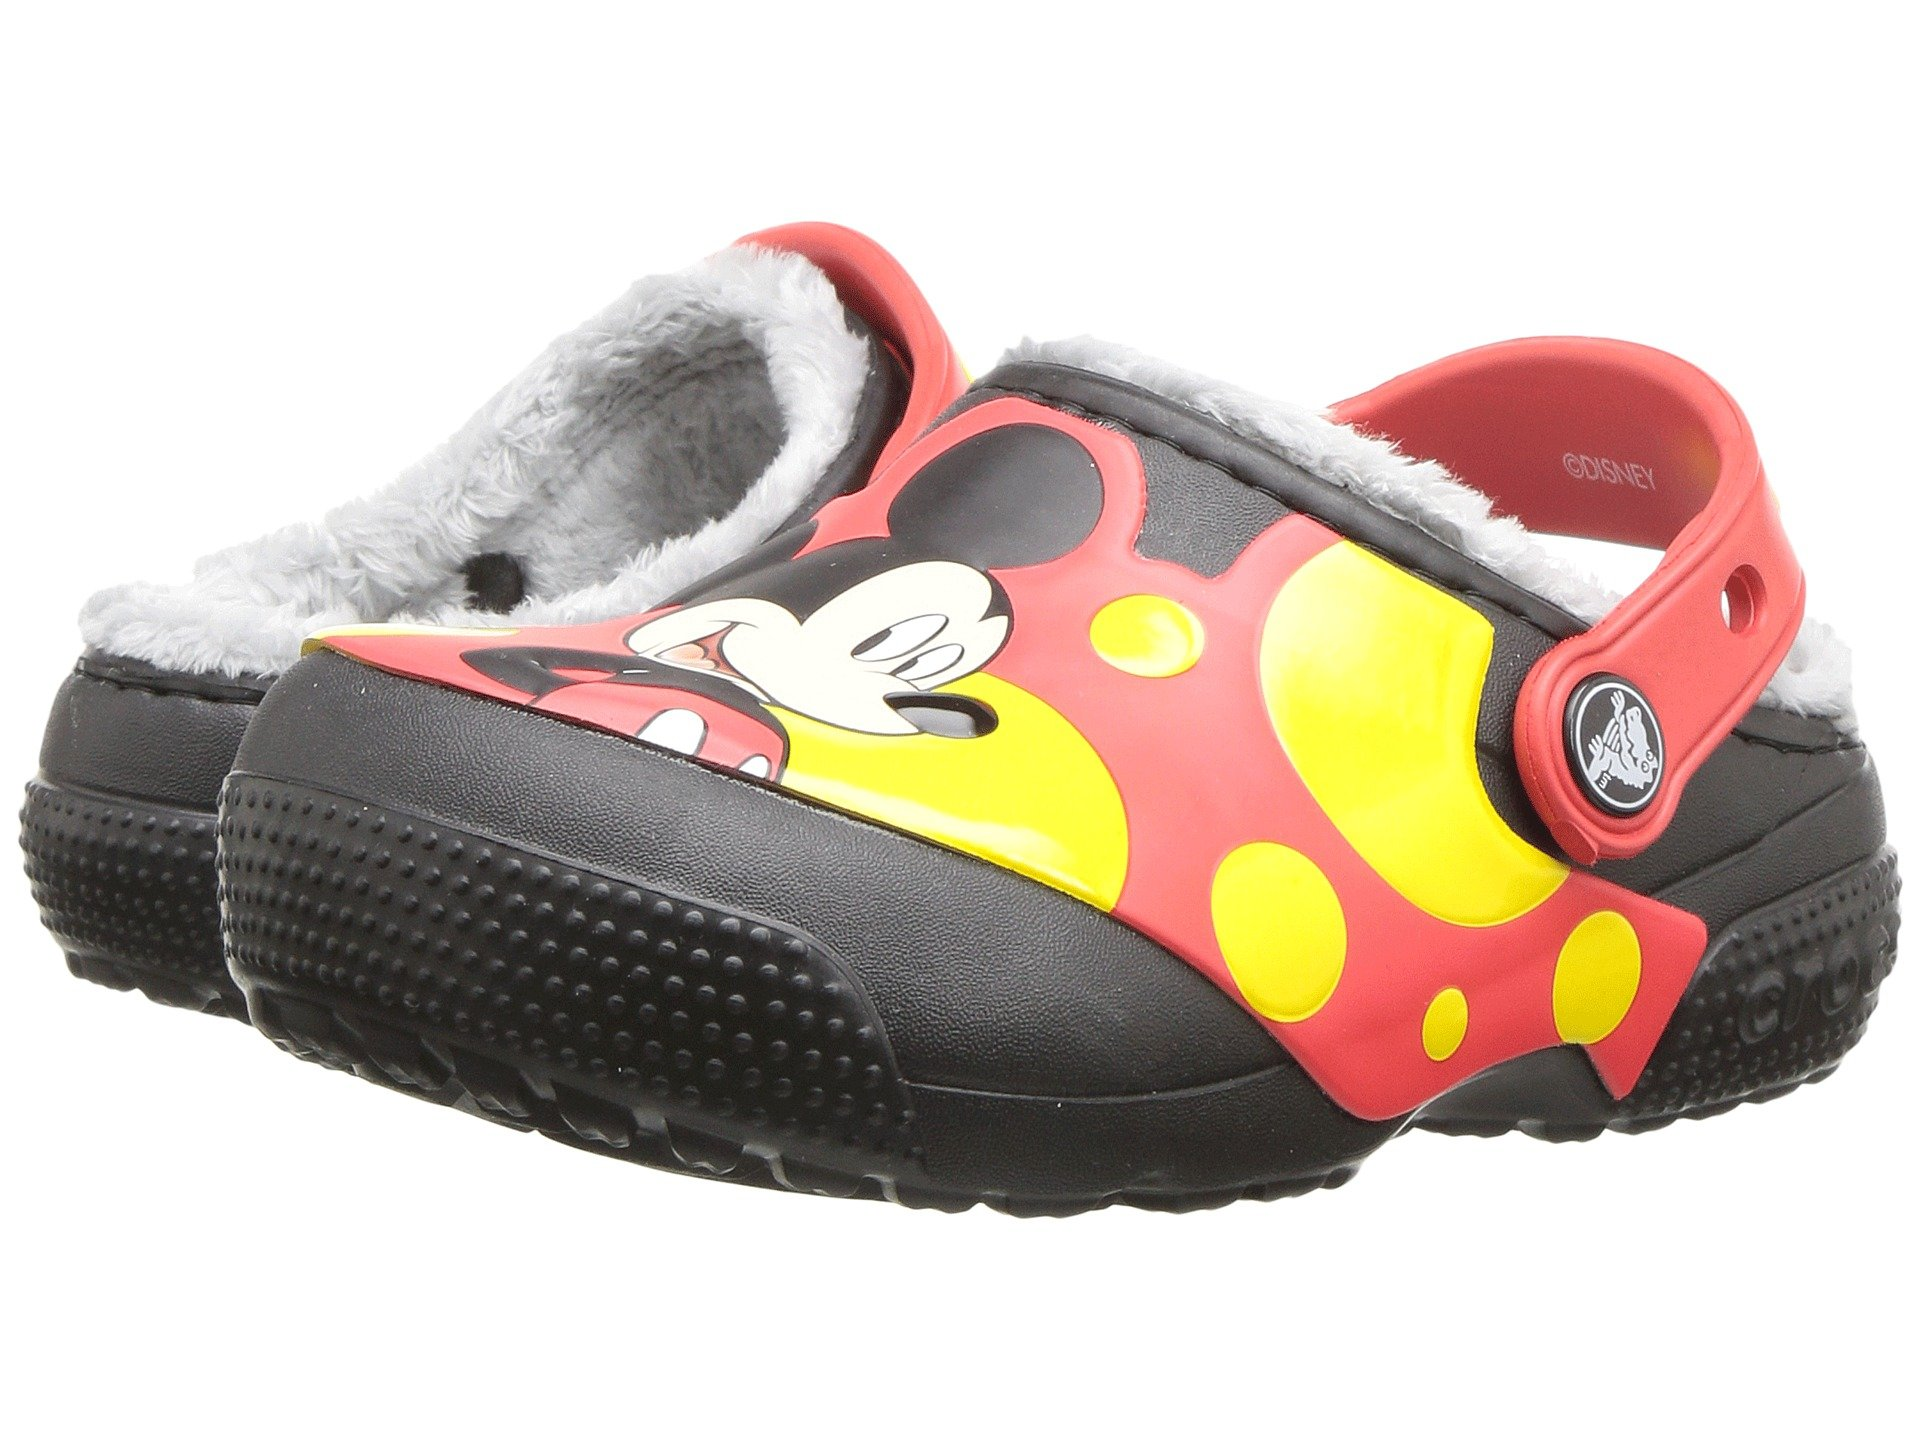 503492a785d86 Crocs Kids FunLab Lined Mickey Clog (Toddler Little Kid .